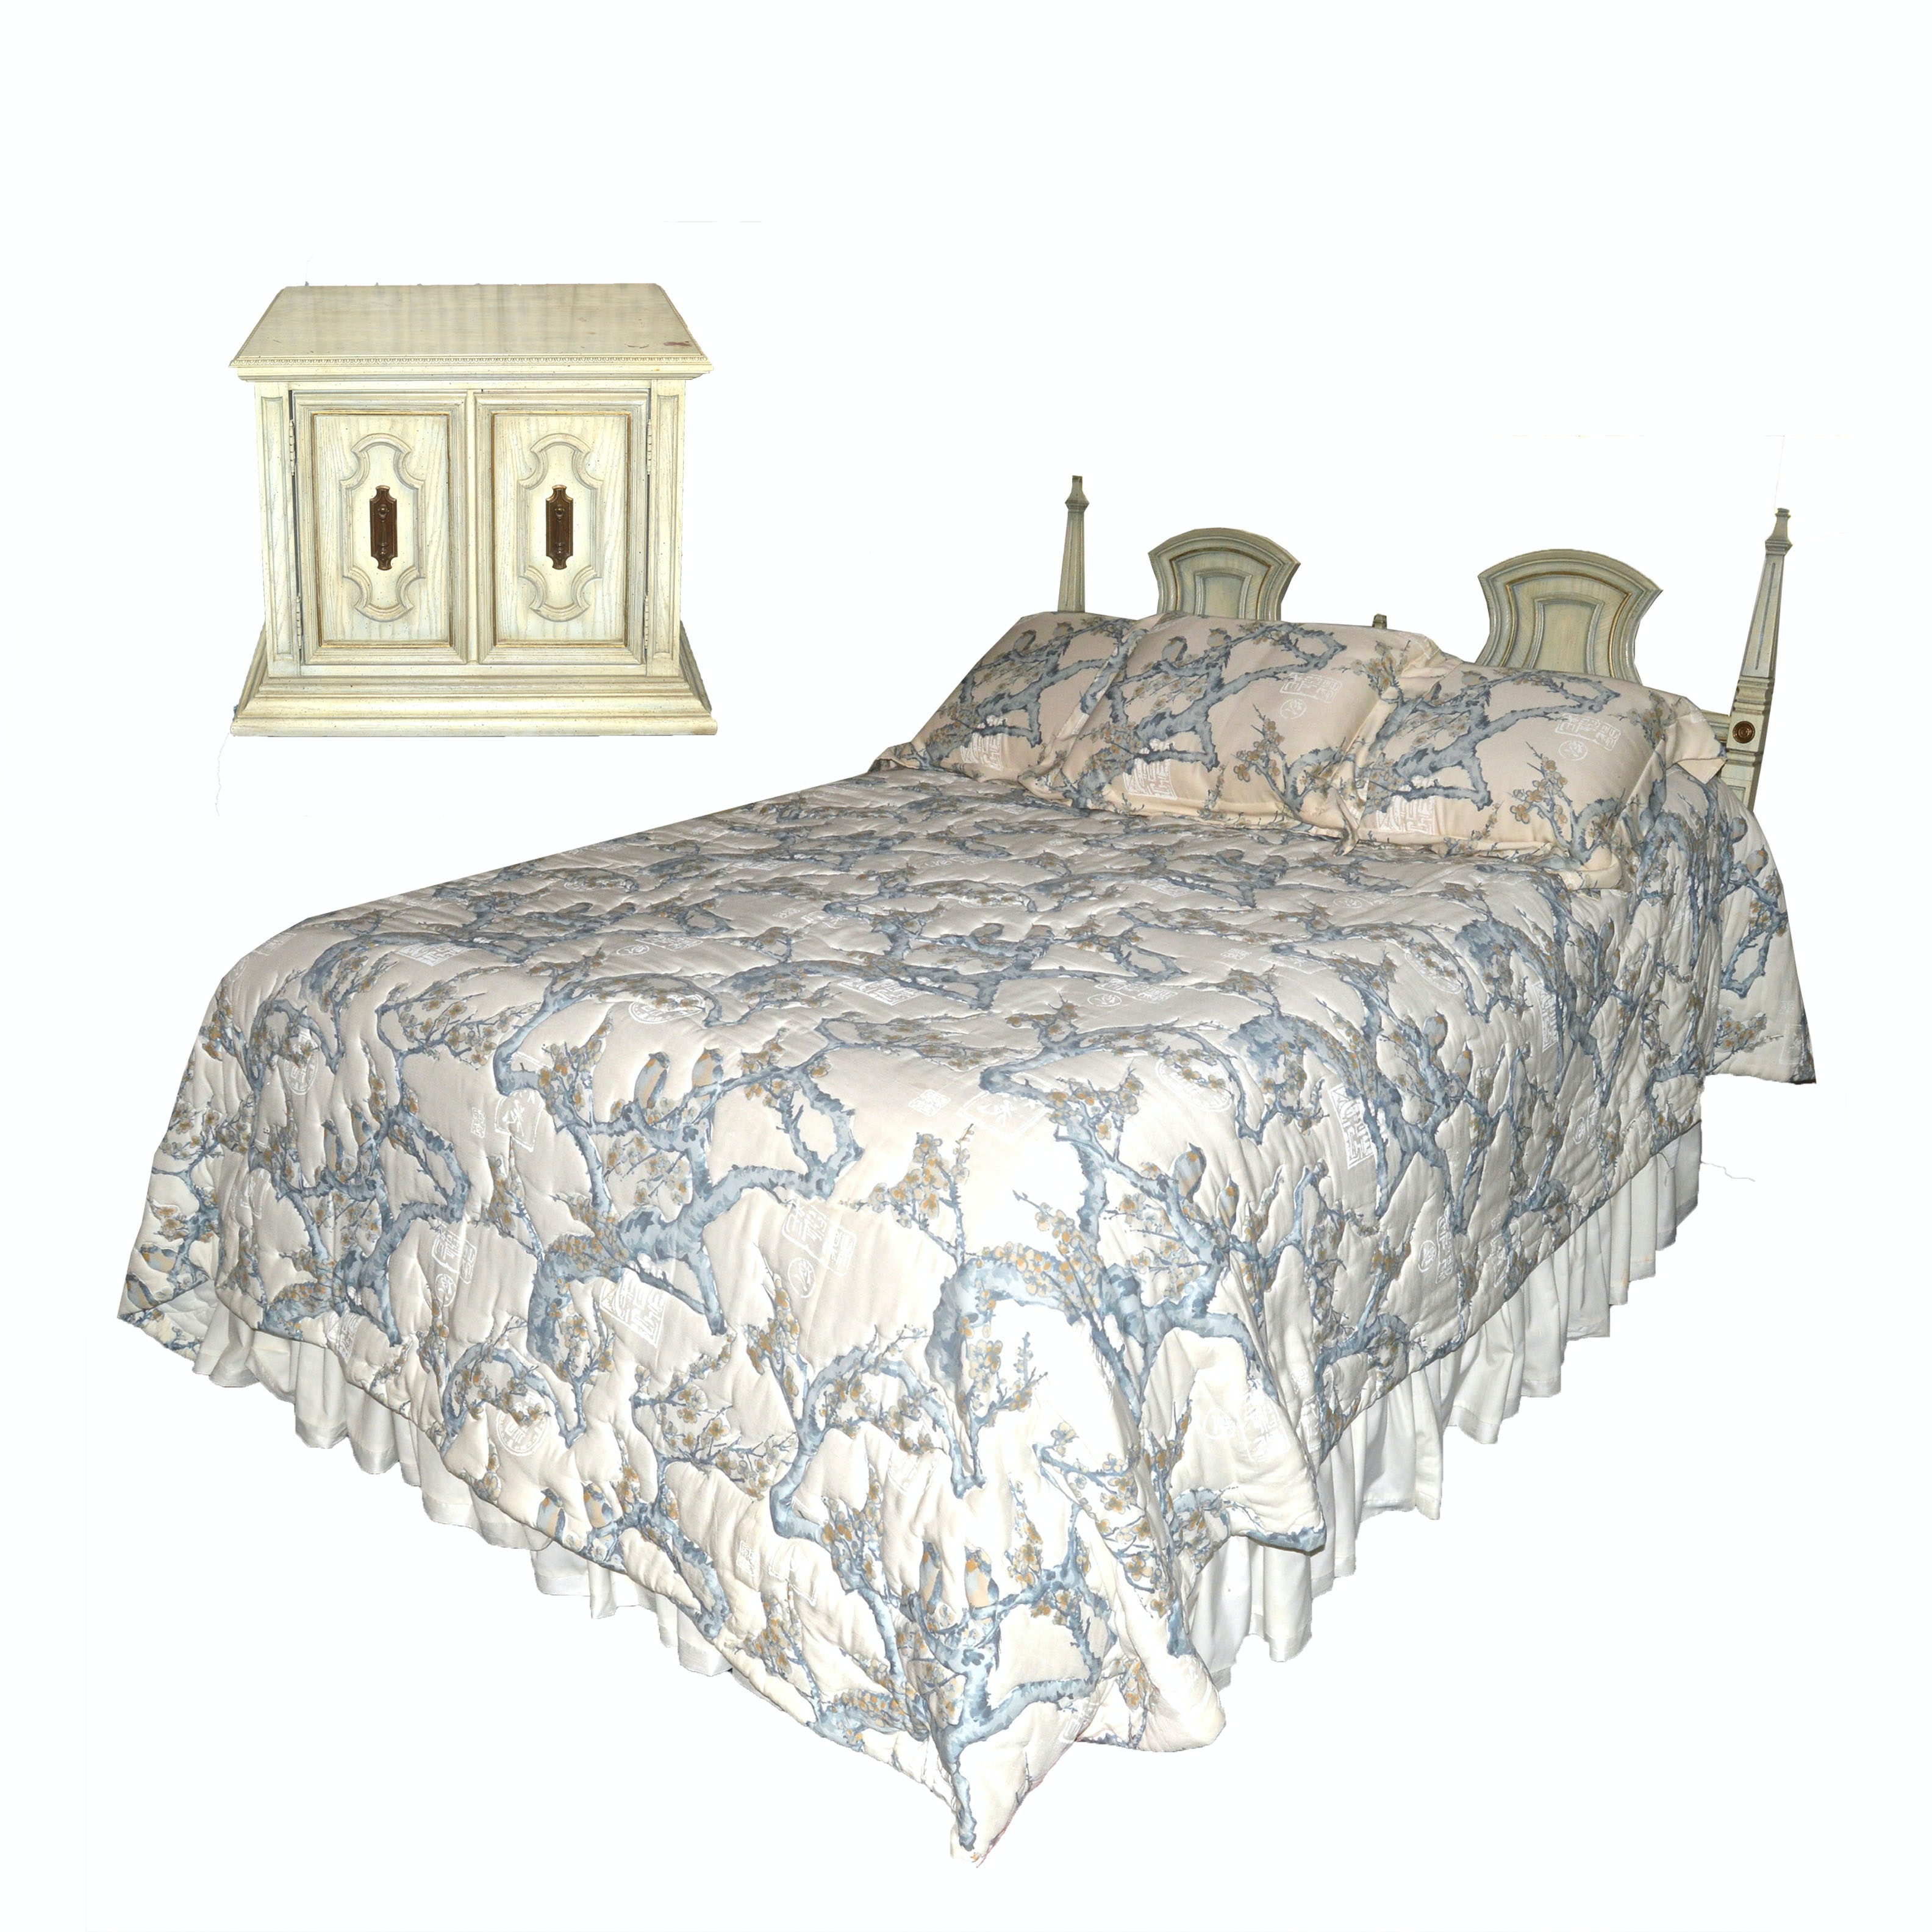 Louis XVI Style Queen Bed Frame, Quilt Set and Nightstand